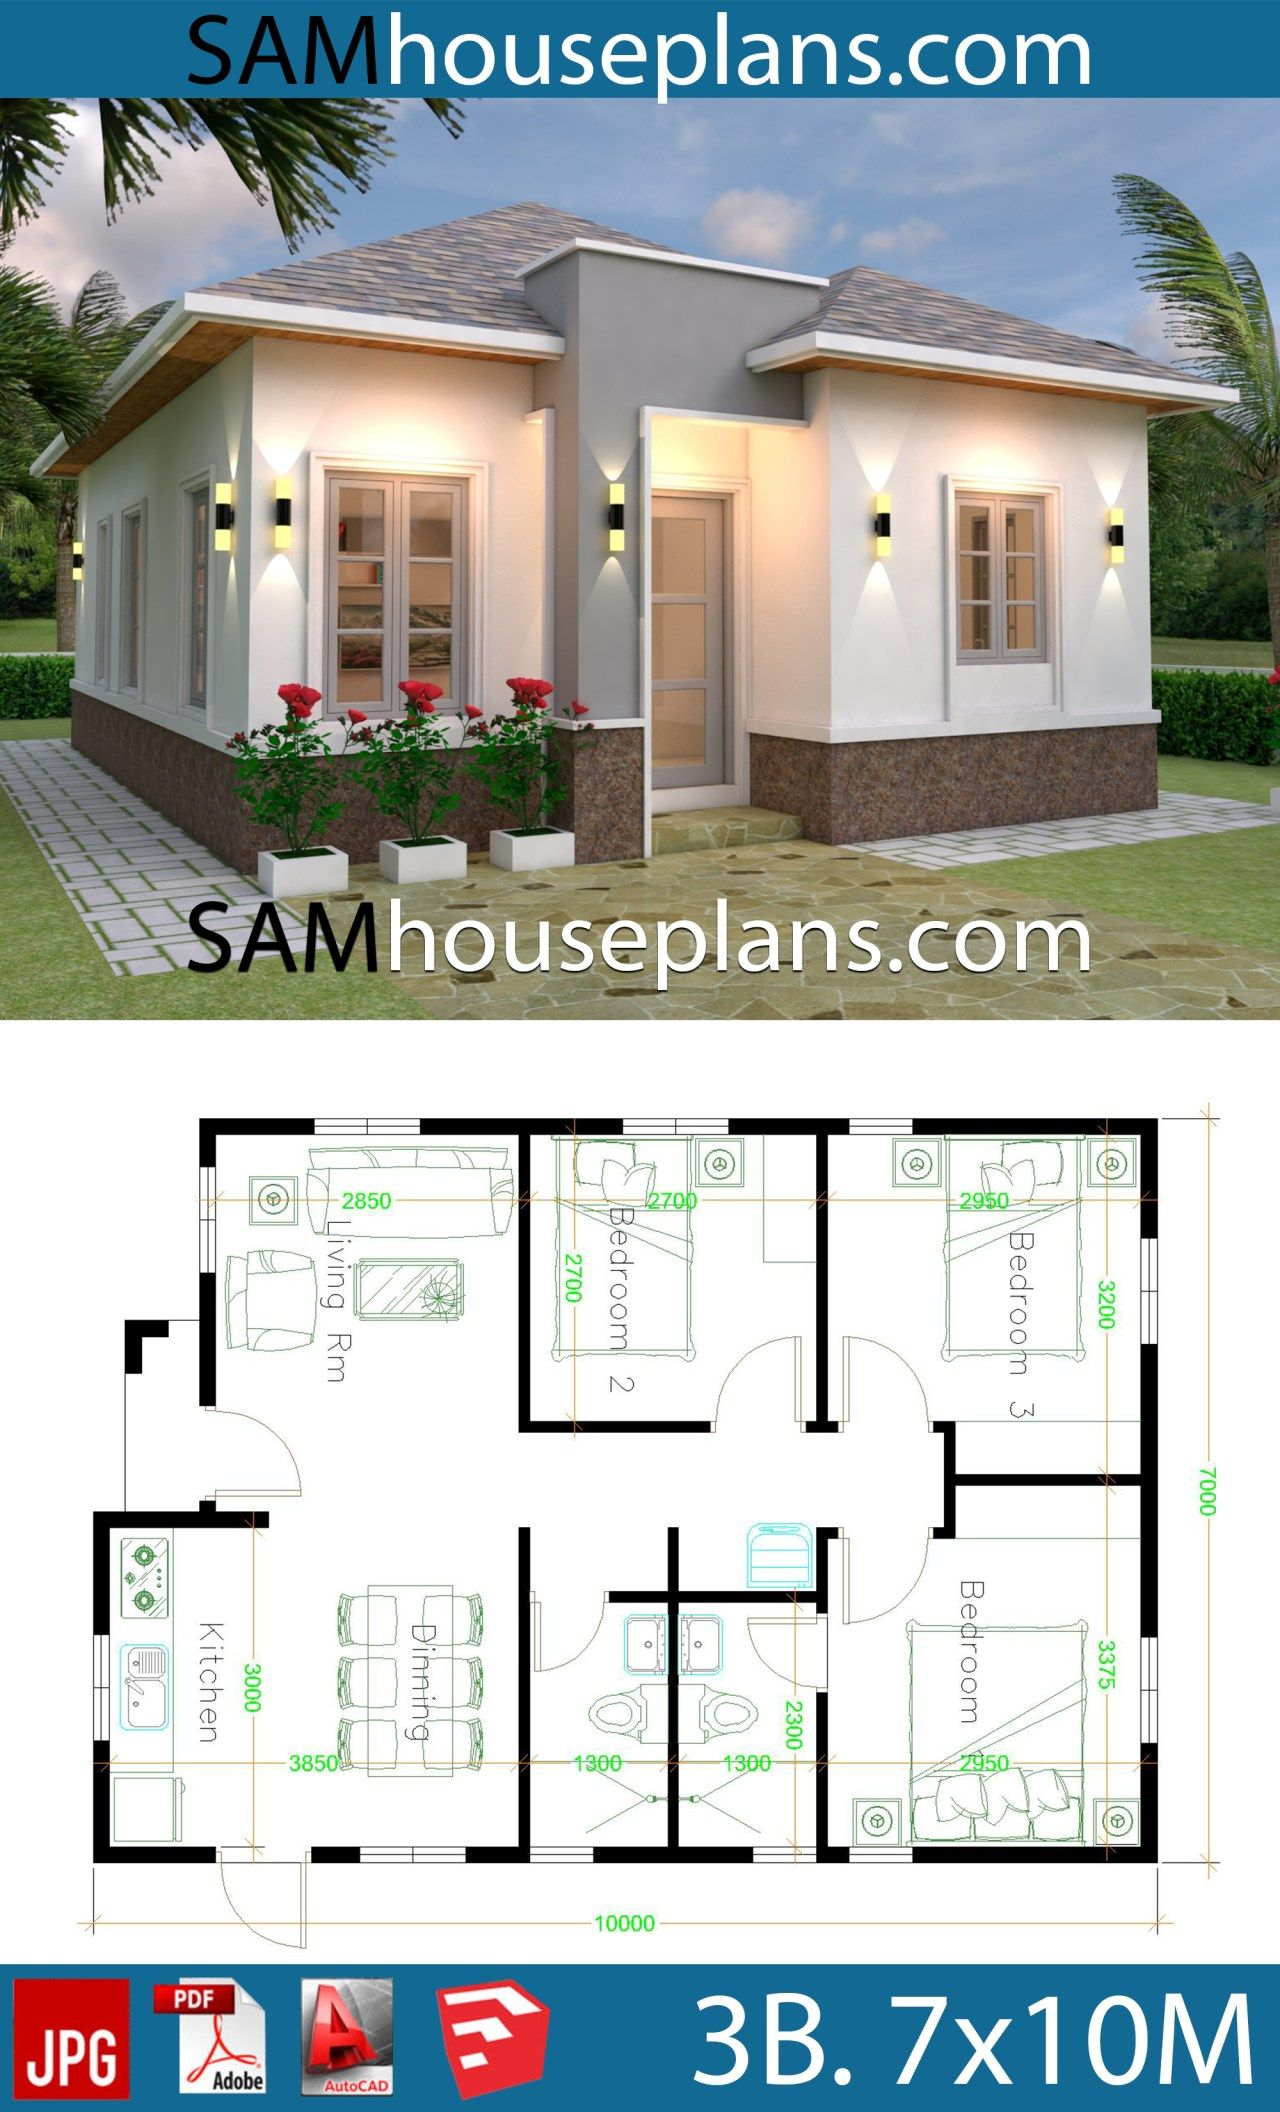 House Plans 7x10 With 3 Bedrooms House Plans S House Plan Gallery My House Plans House Construction Plan